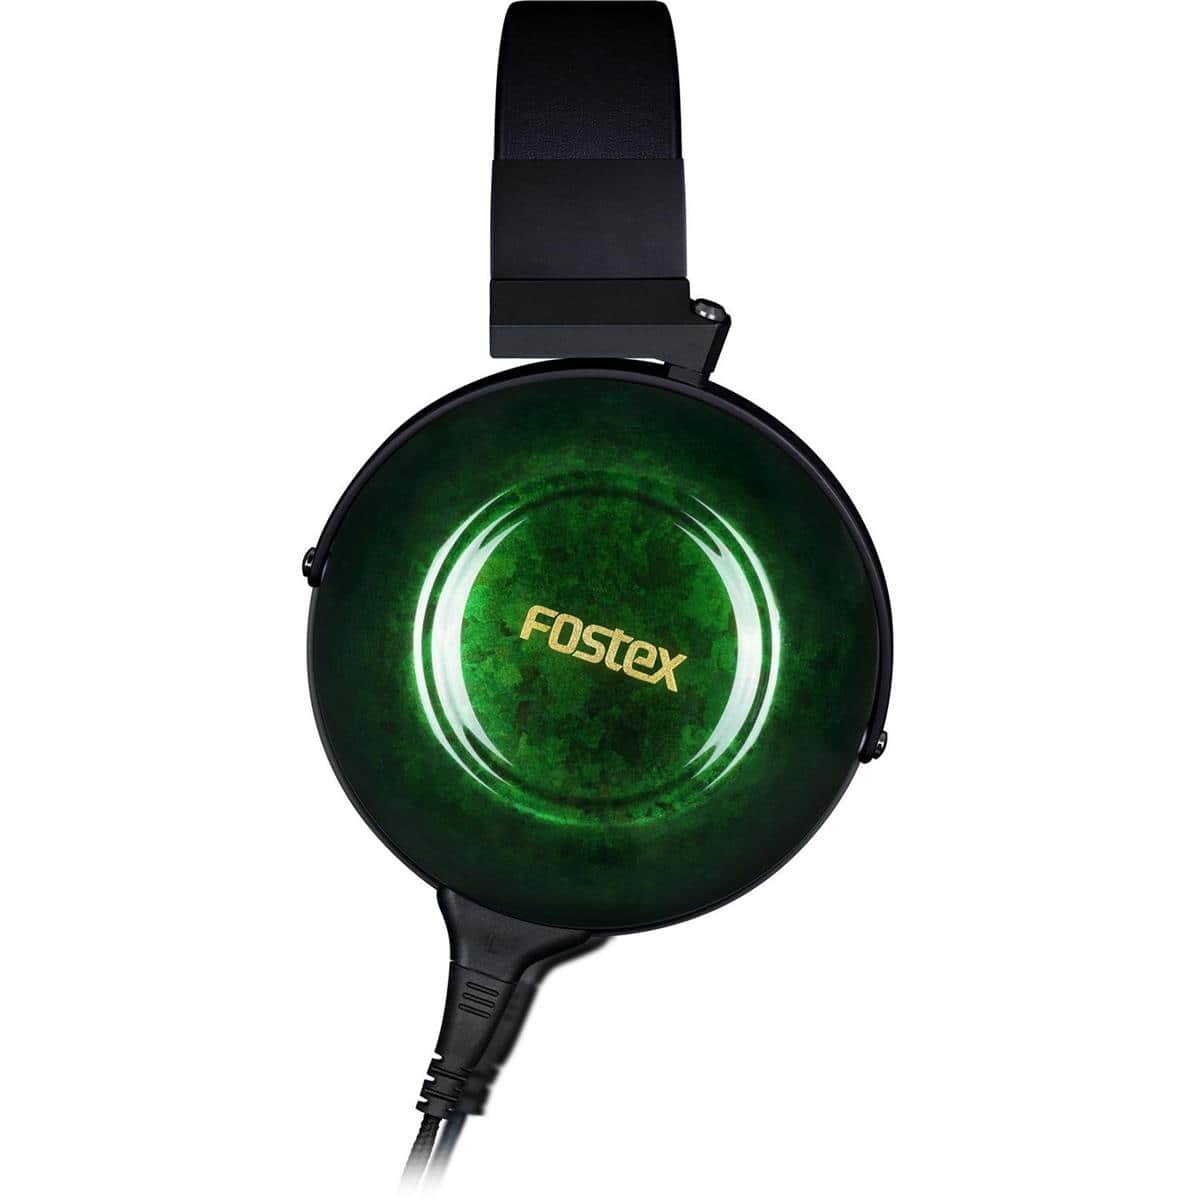 Fostex TH900mk2 Headphones (Limited Edition Emerald Green) $900 + free s/h